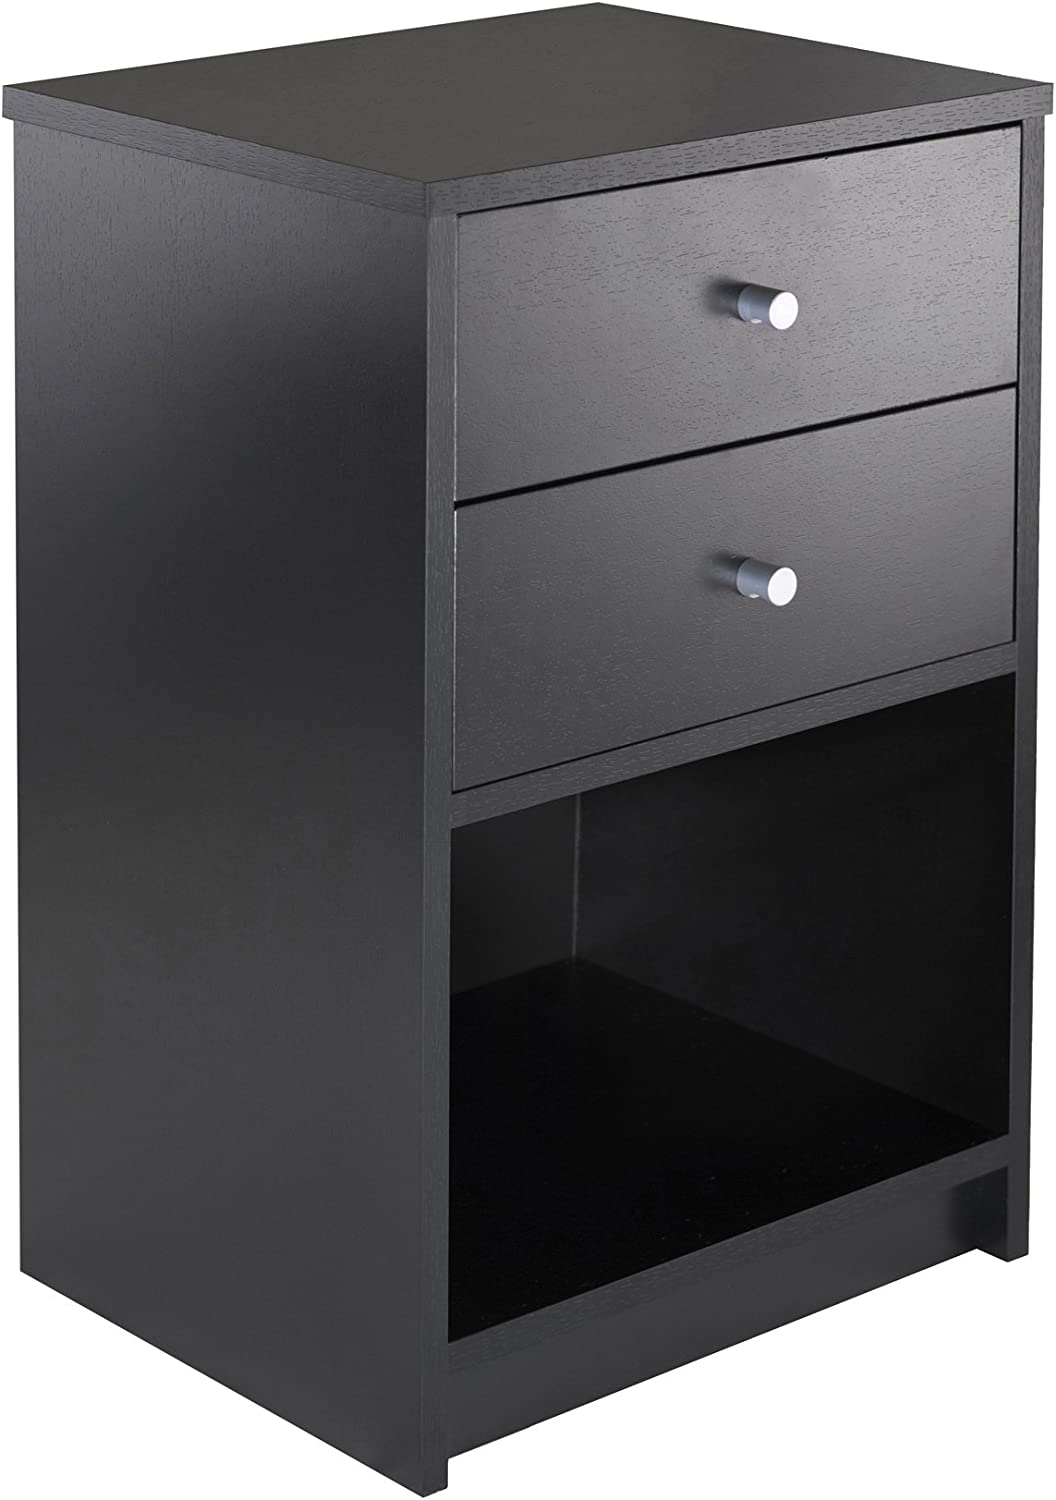 Winsome Ava model name Accent Table Black